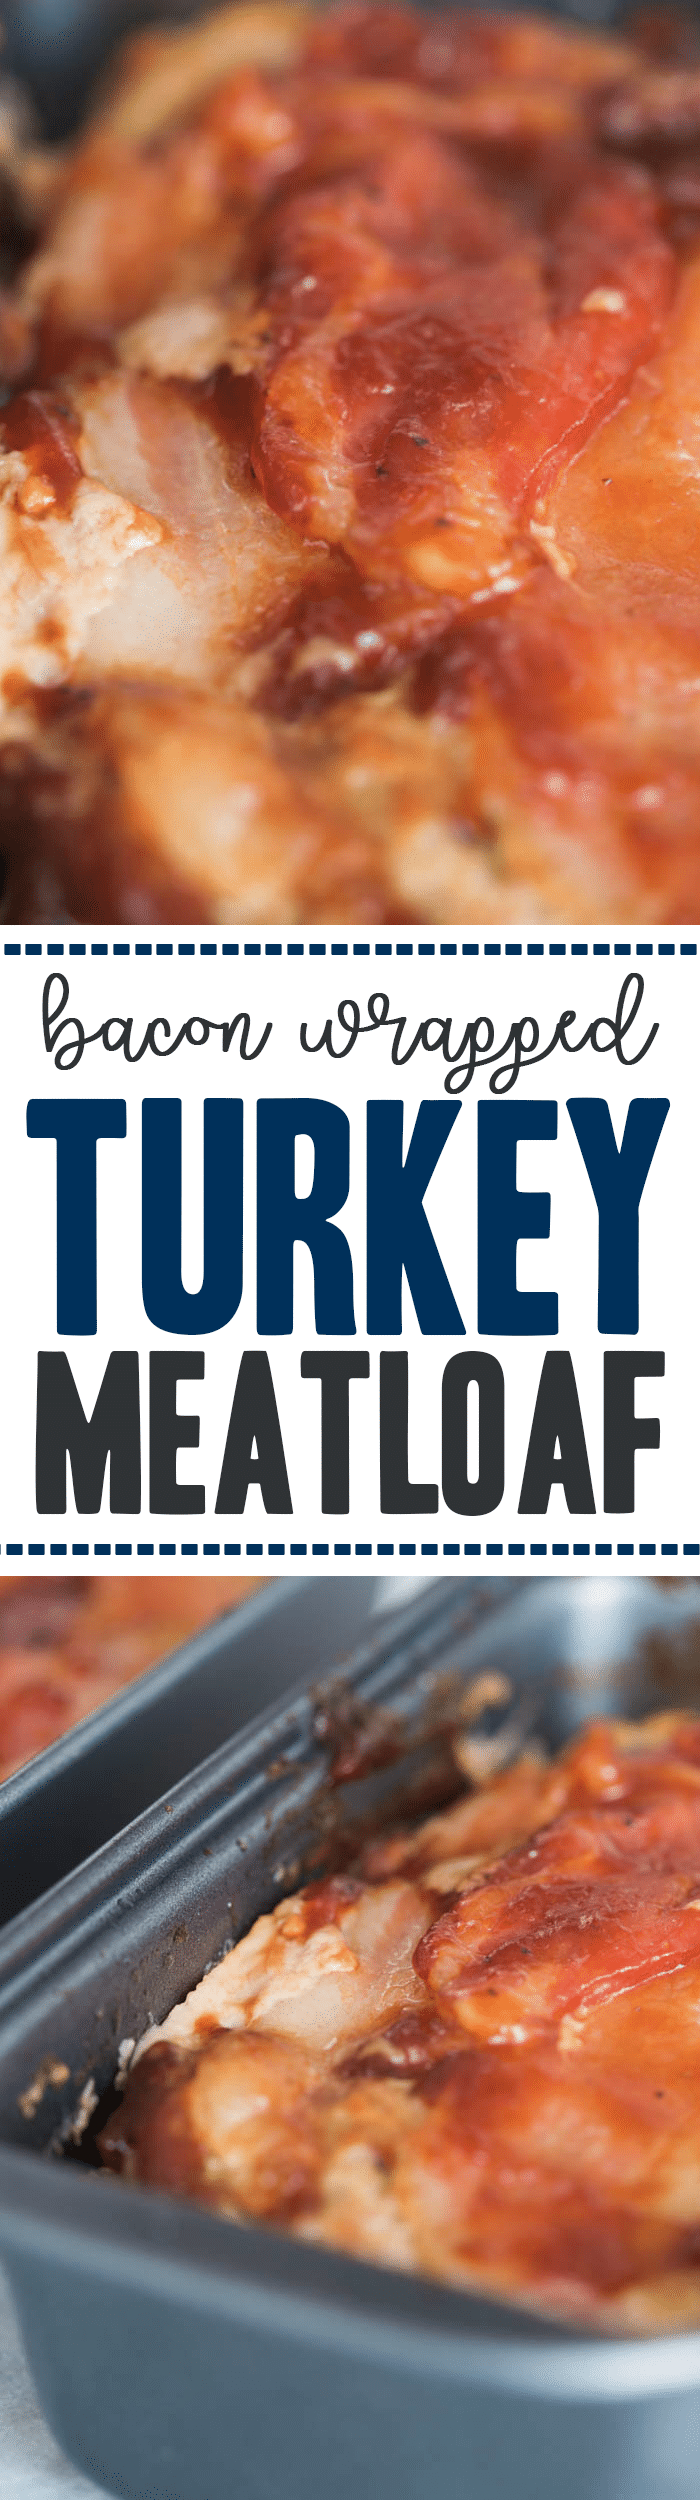 Easy Bacon Wrapped Turkey Meatloaf made like muffins in mini pans – extremely moist perfect personal sized portions to be healthy